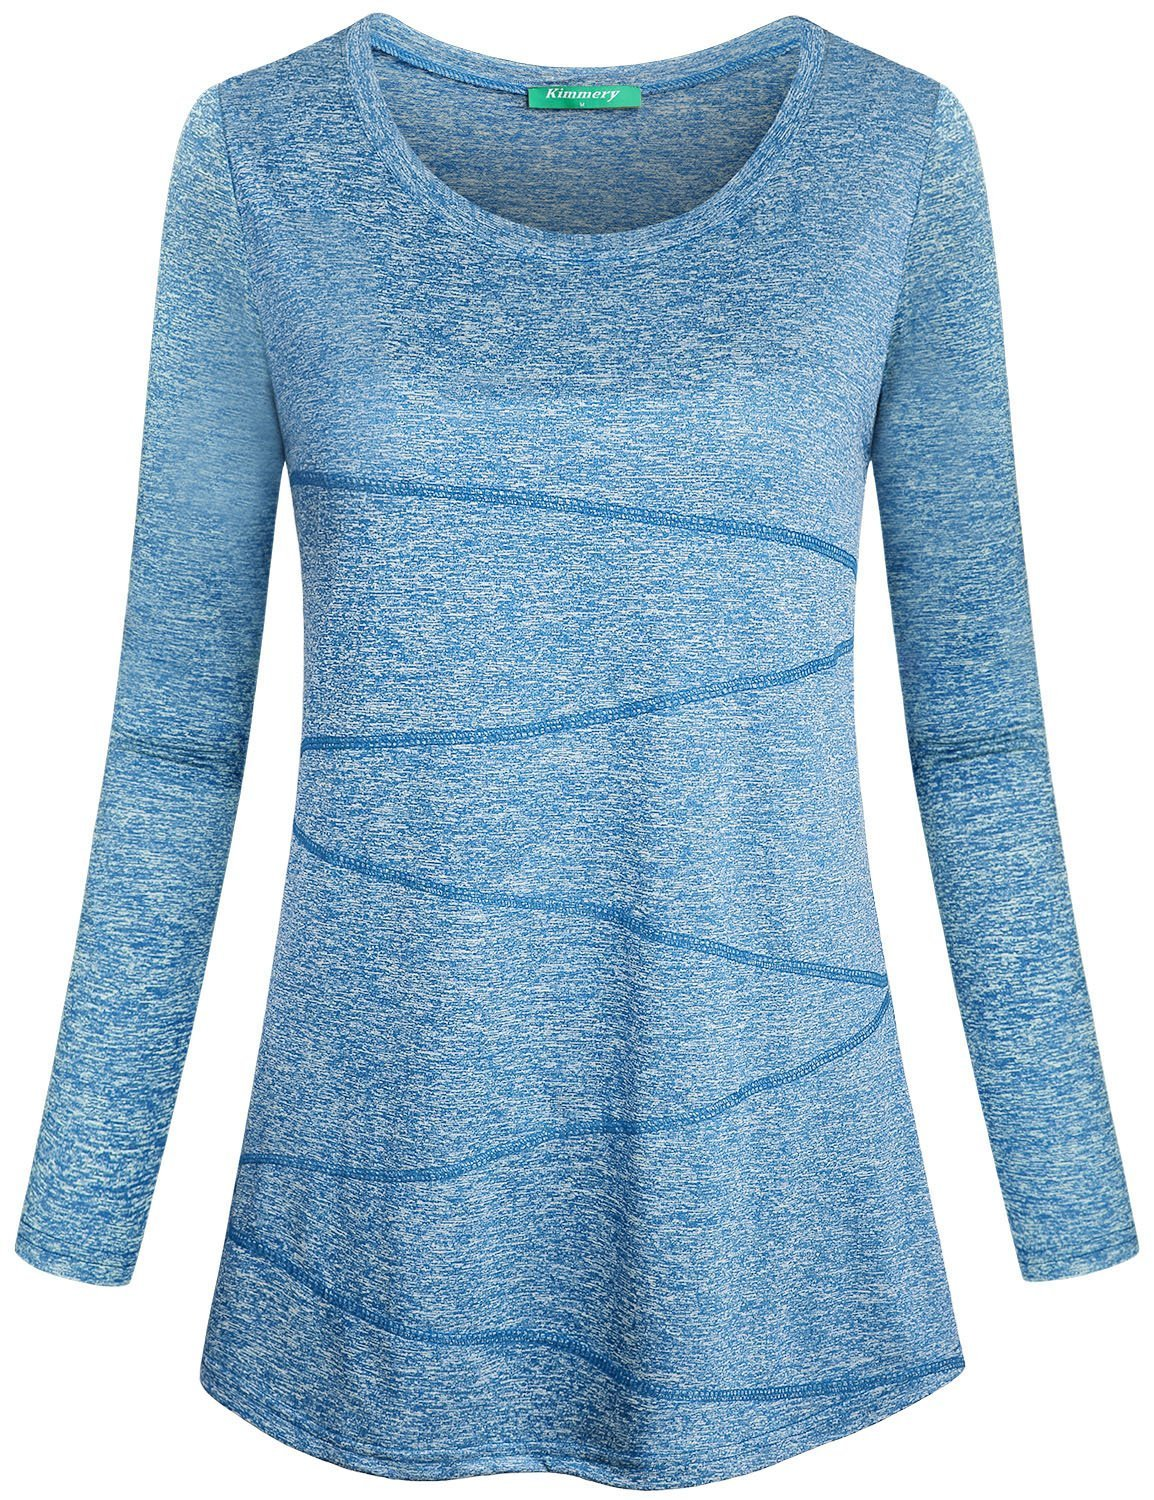 Kimmery Exercise Tops for Women, Polyester T Shirt Long Sleeve Round Collar Breathable Elastic Marled Training Shirt Comfortable Light Blue Large by Kimmery